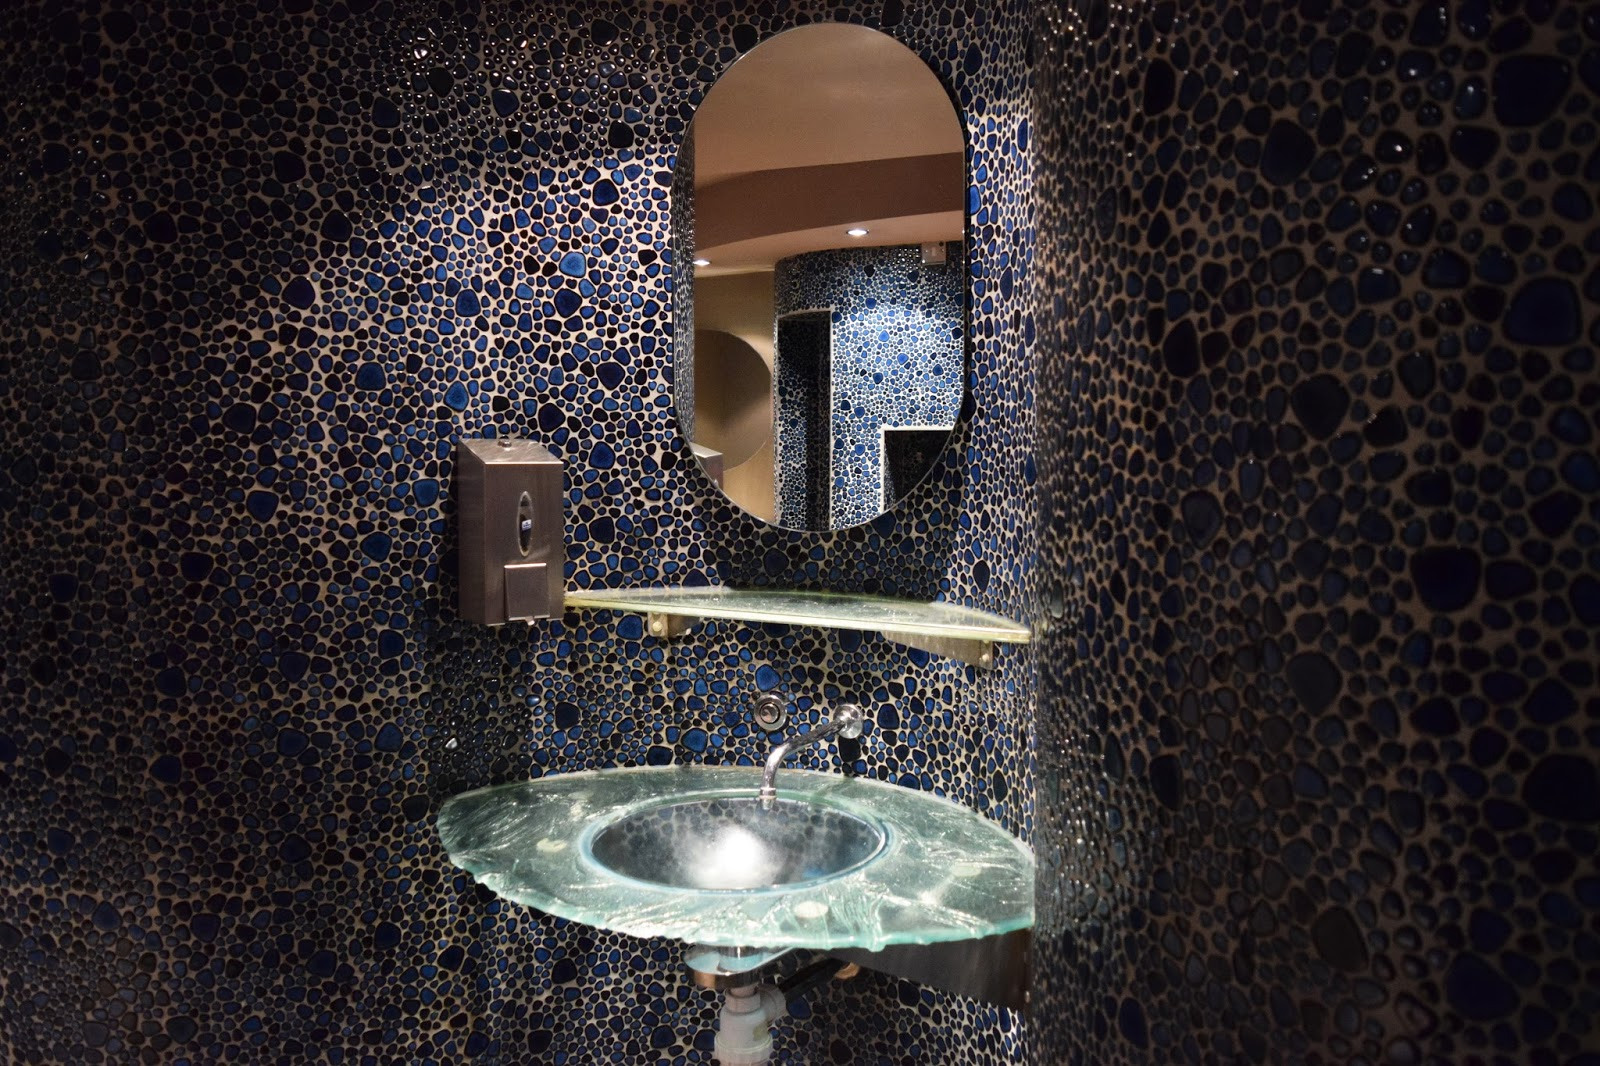 the sink area of a pub toilet. the walls are covered in blue mosaic stones